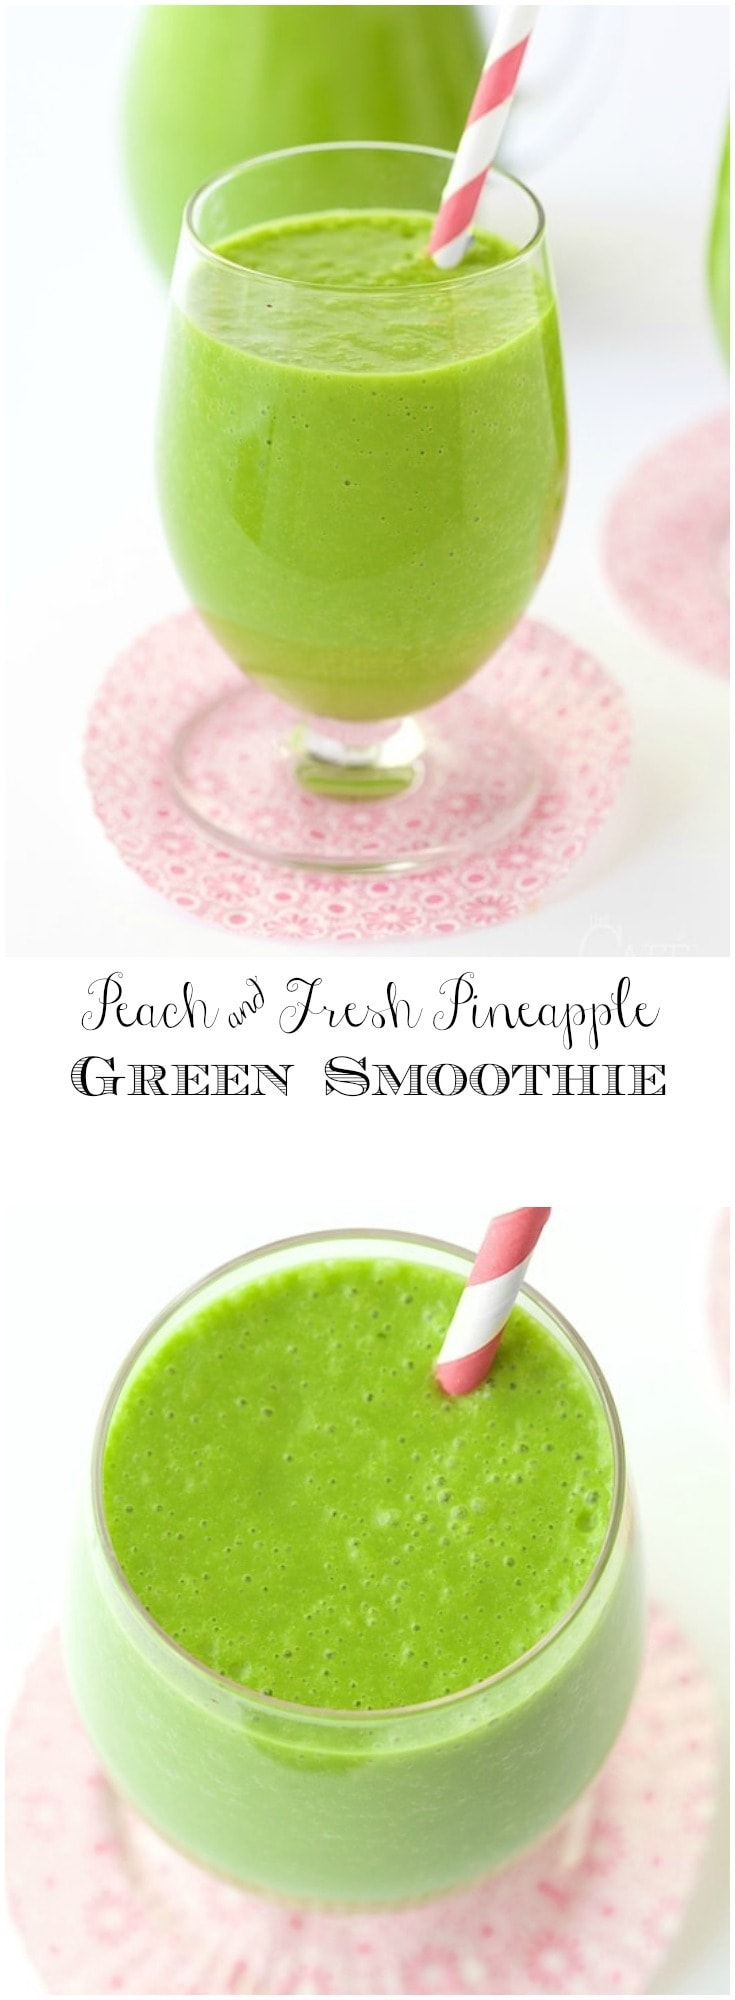 This green smoothie is a super healthy and delicious way to start the day!